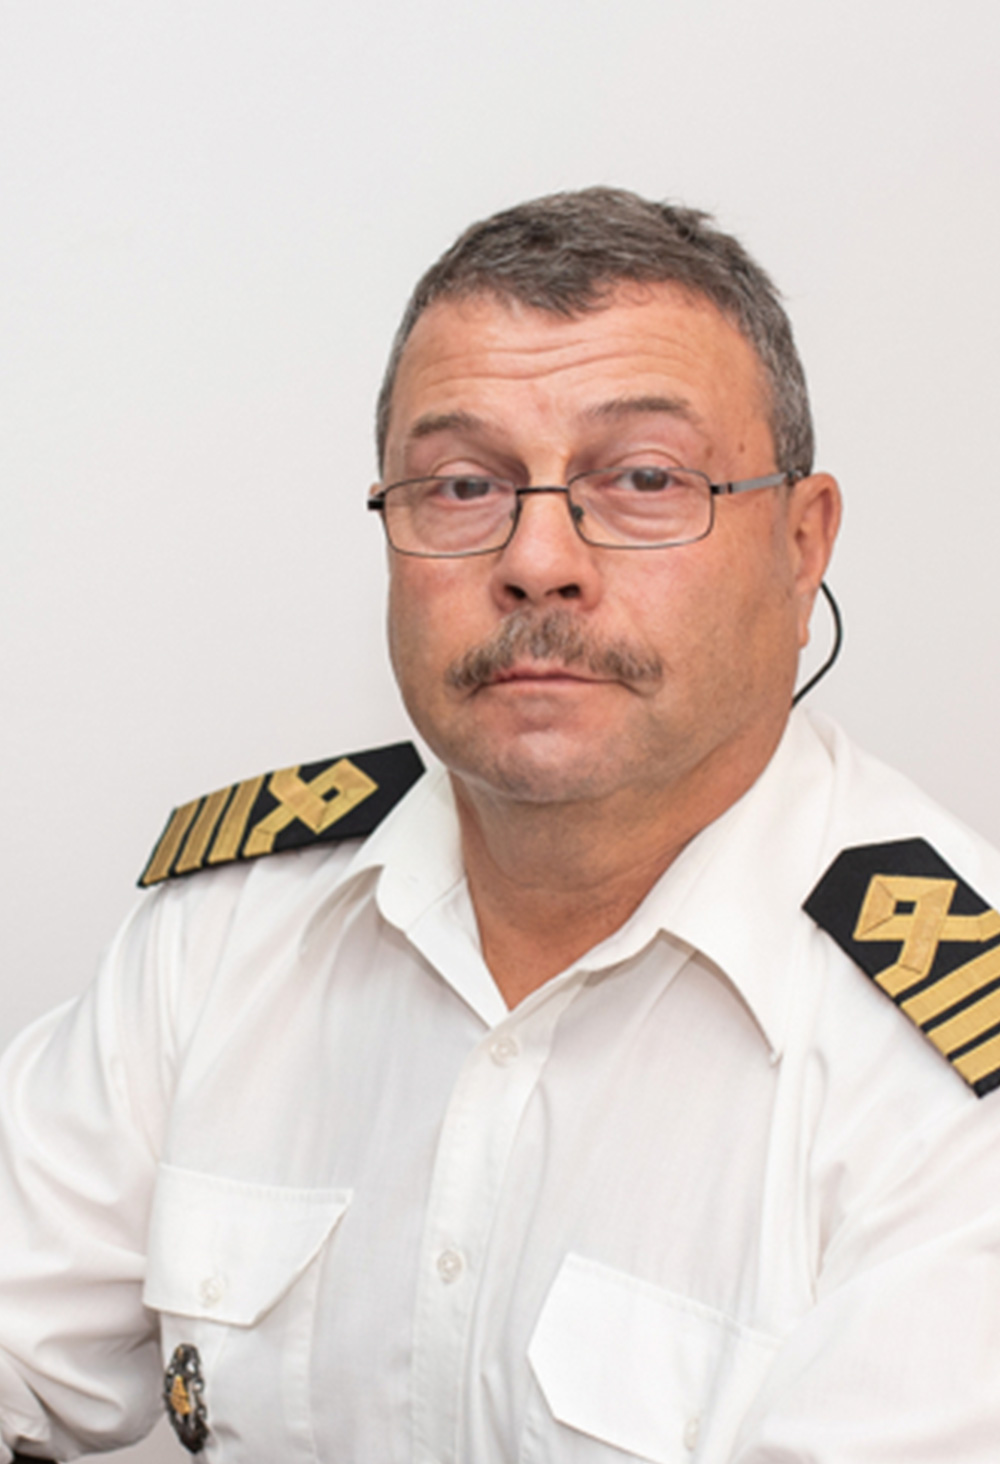 Captain Dmitry Dynkevich